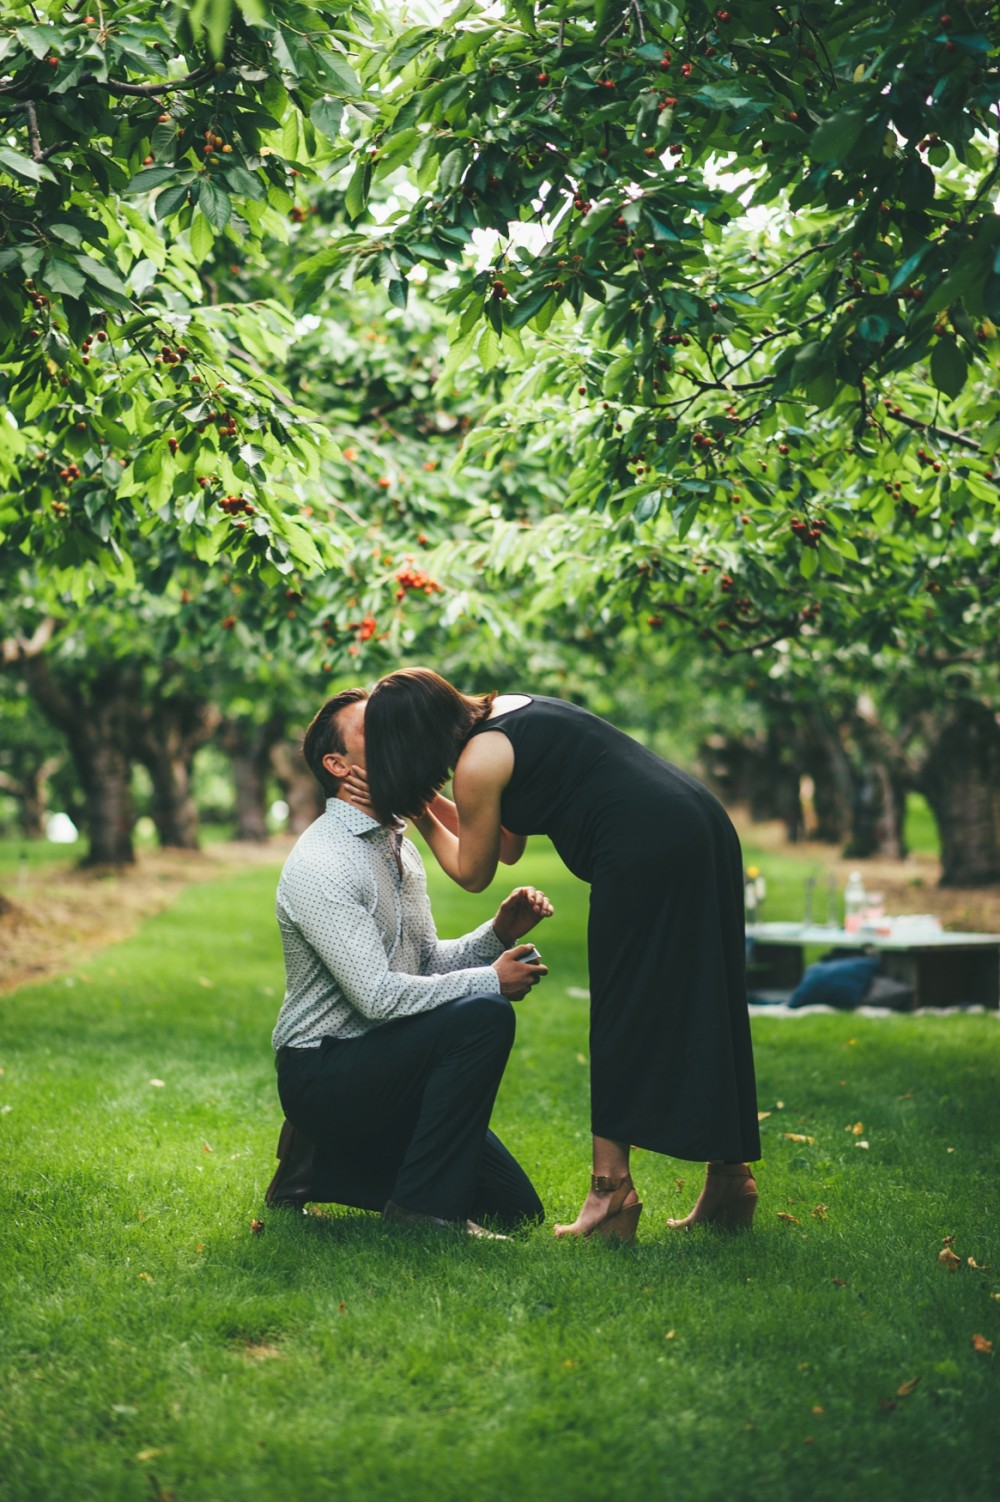 Image 9 of Surprise Proposal during Maternity Shoot